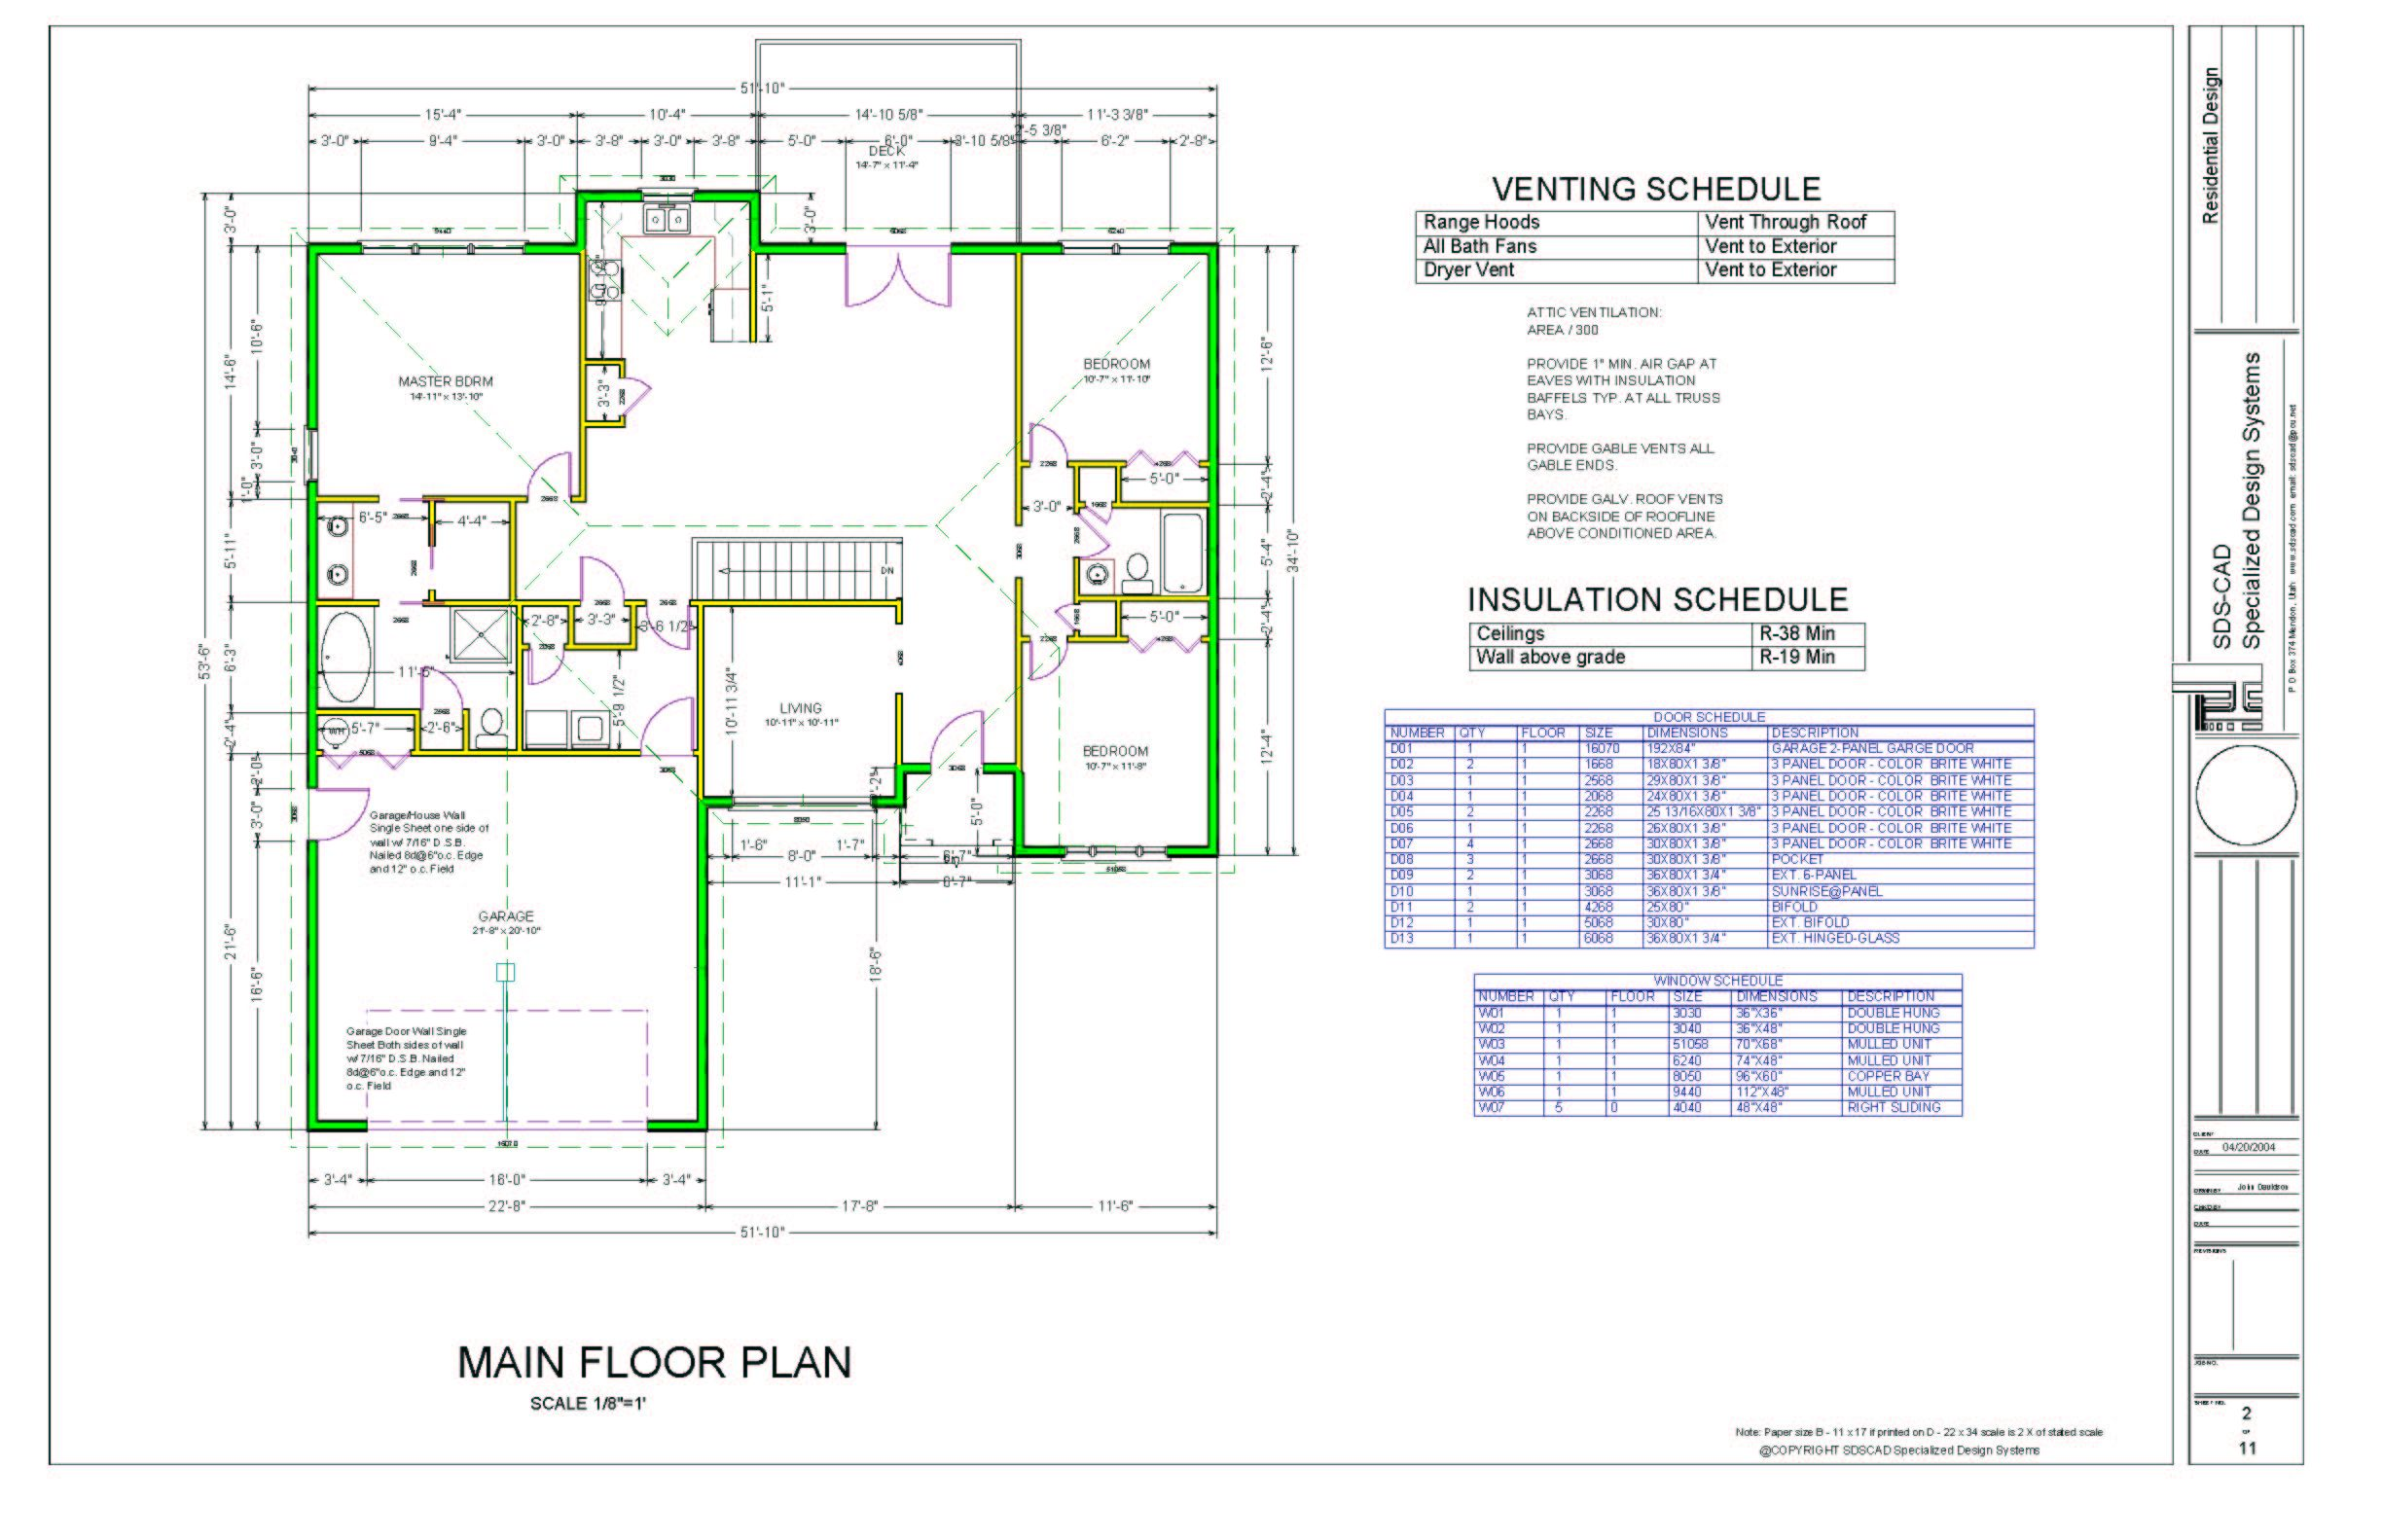 Hgtv Home Design Software Download Free Just Sharing For All Home Design Software Free House Plans House Design